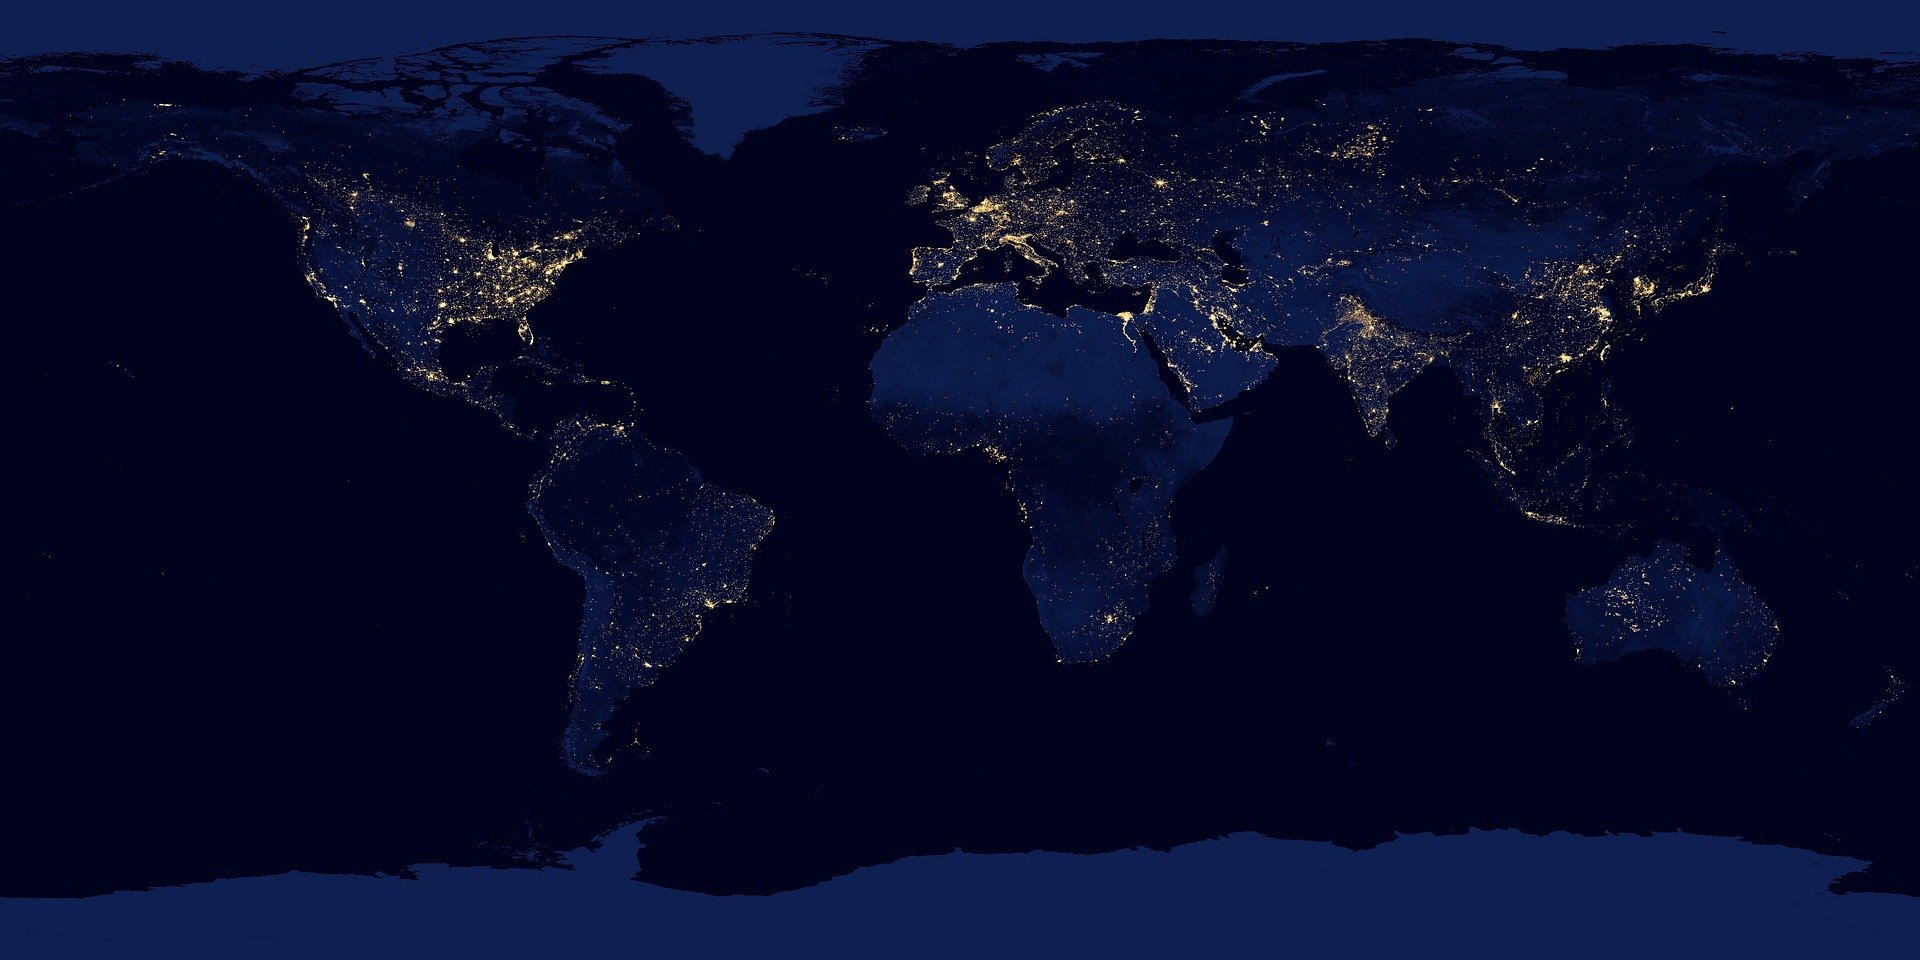 a map of the world at night with lights in heavily populated areas